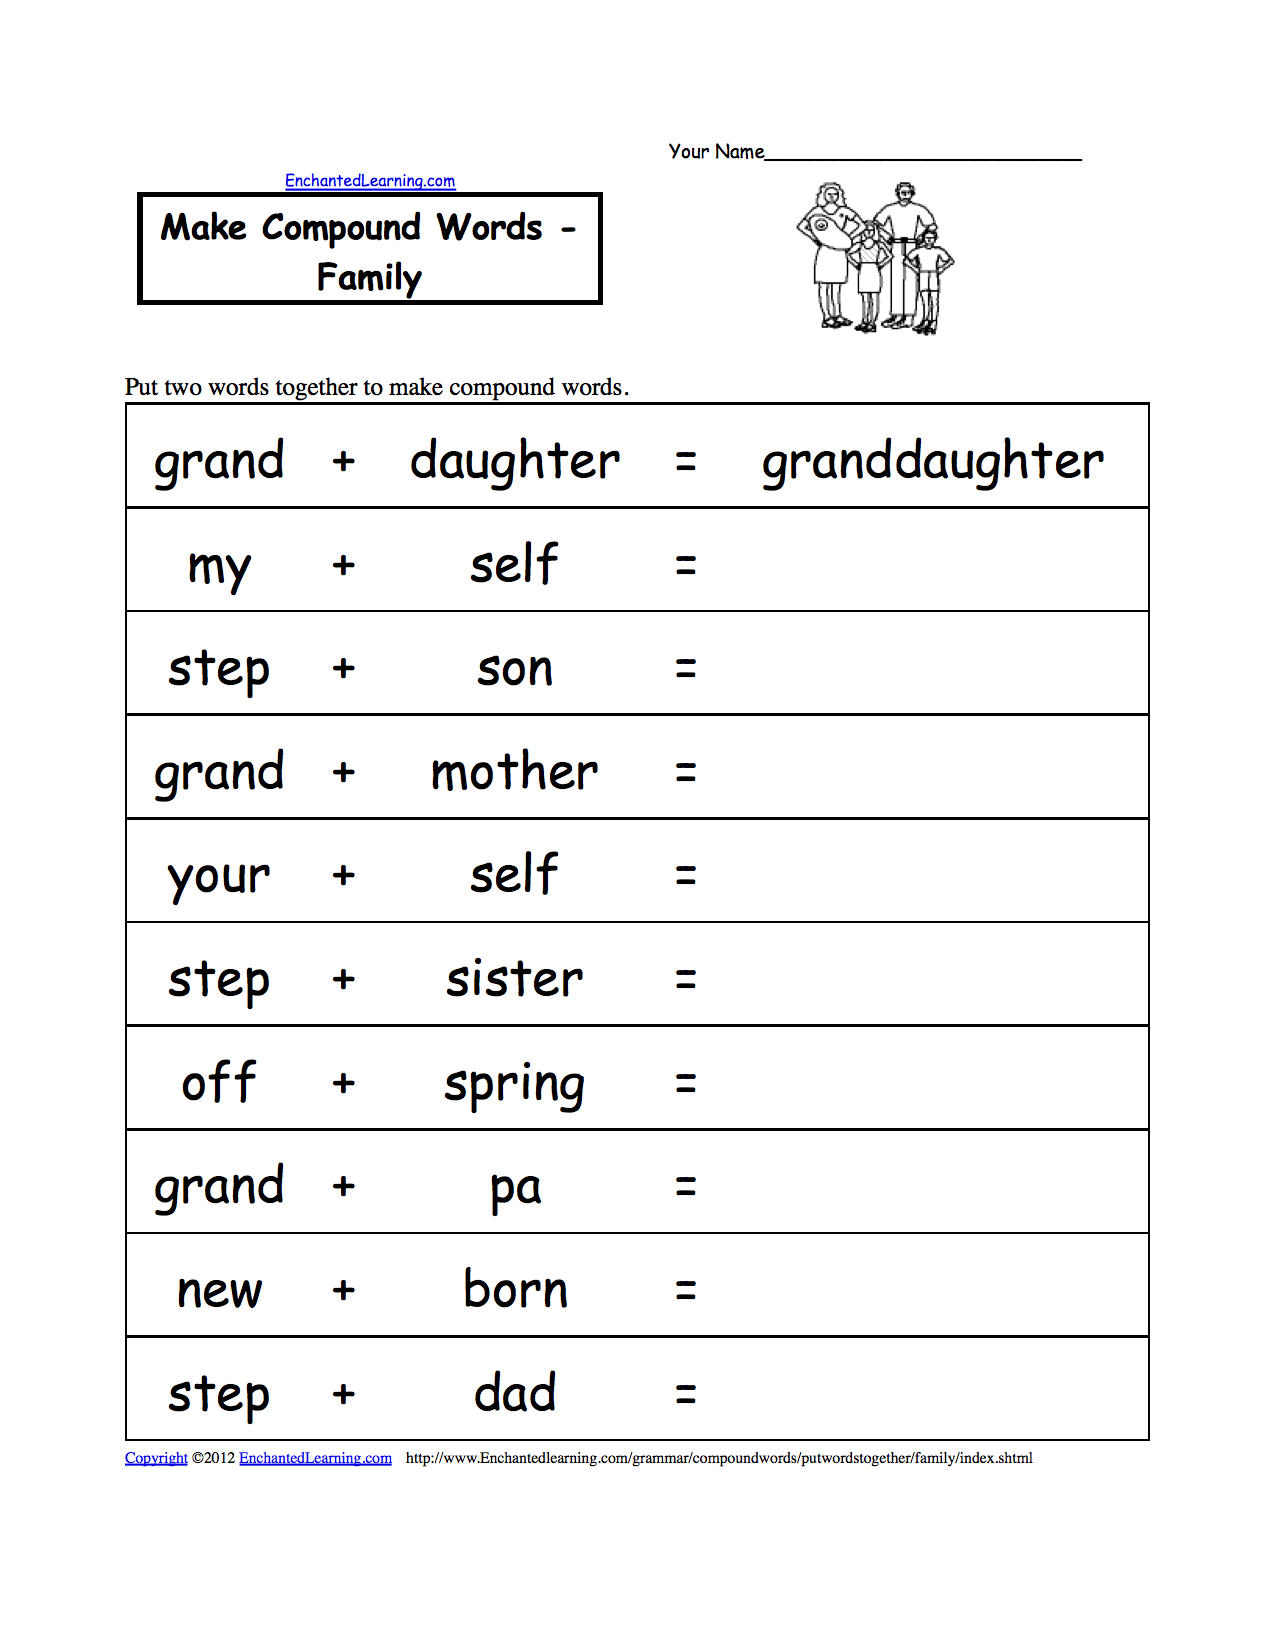 Worksheet Esl Worksheets Pdf free esl pdf worksheets for beginners delwfg com beginner com